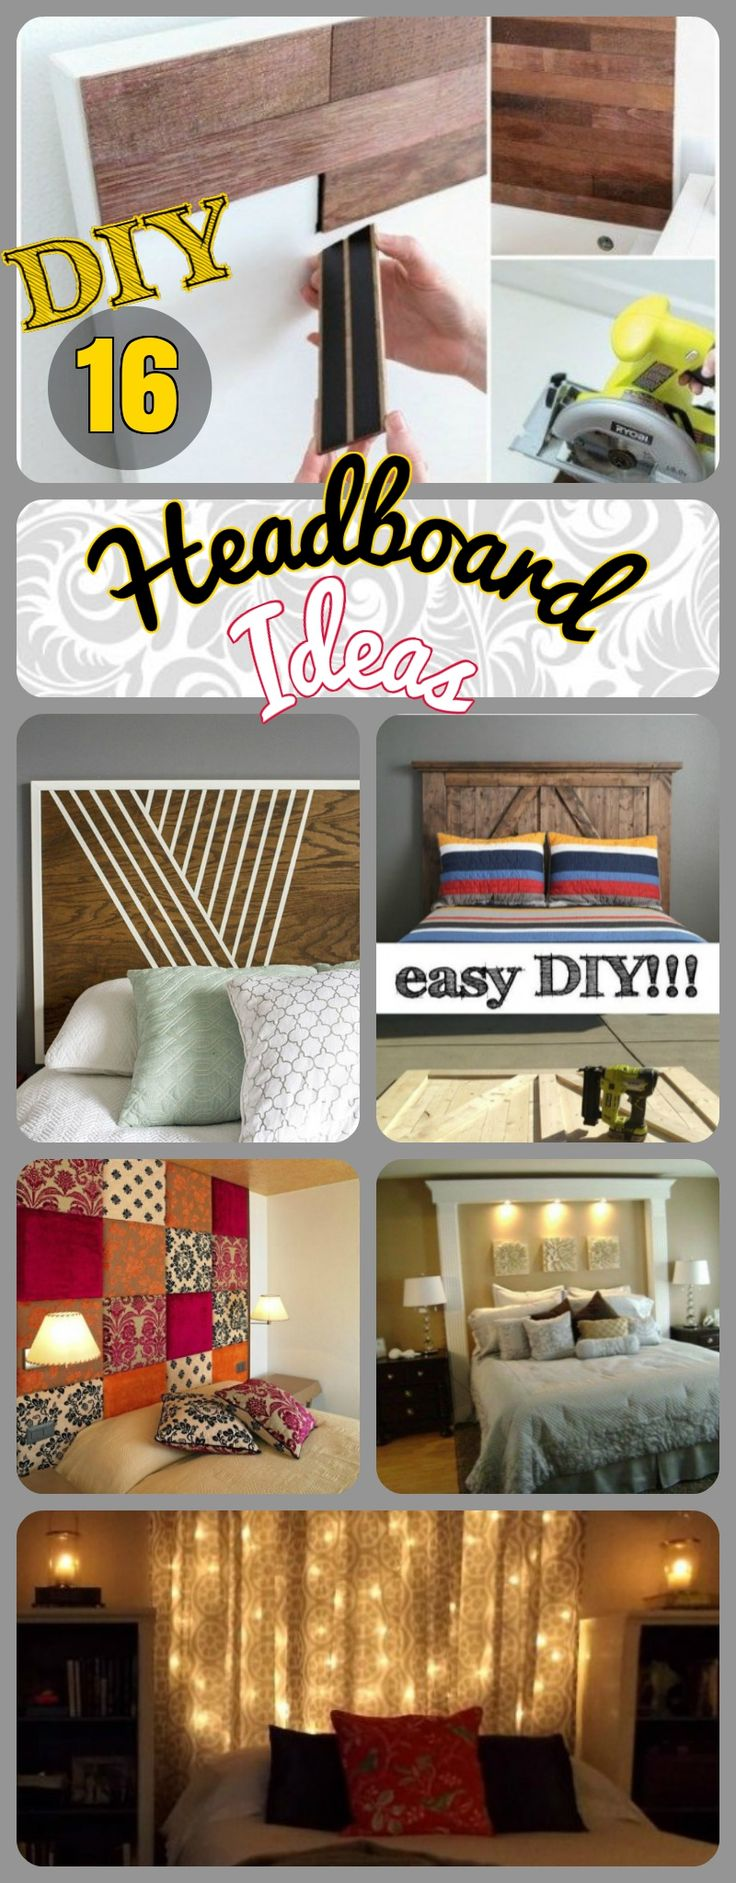 16 DIY Headboard Ideas for a Classy Bedroom on Budget. Easy Rustic Wooden Pallet and Door Headboards + Upholstered Tufted Fabric Cheap and Budget Headboards. And Cut peel and Stick  headboards diy ideas.